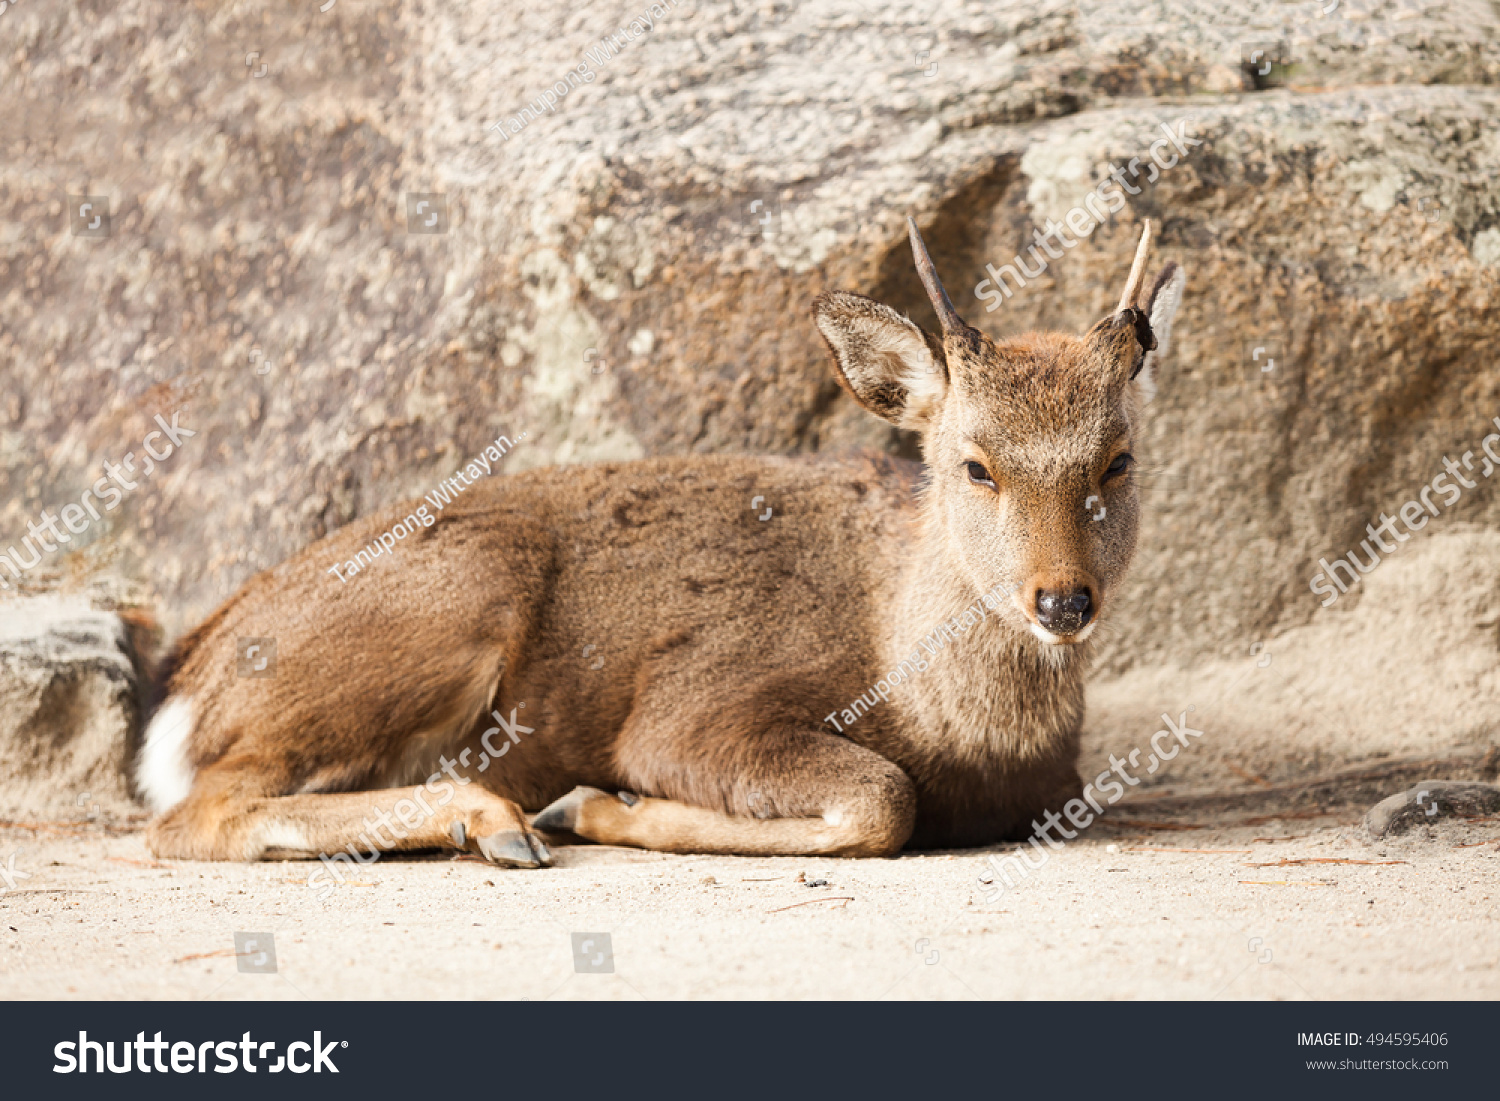 Deer sitting in front of the rock